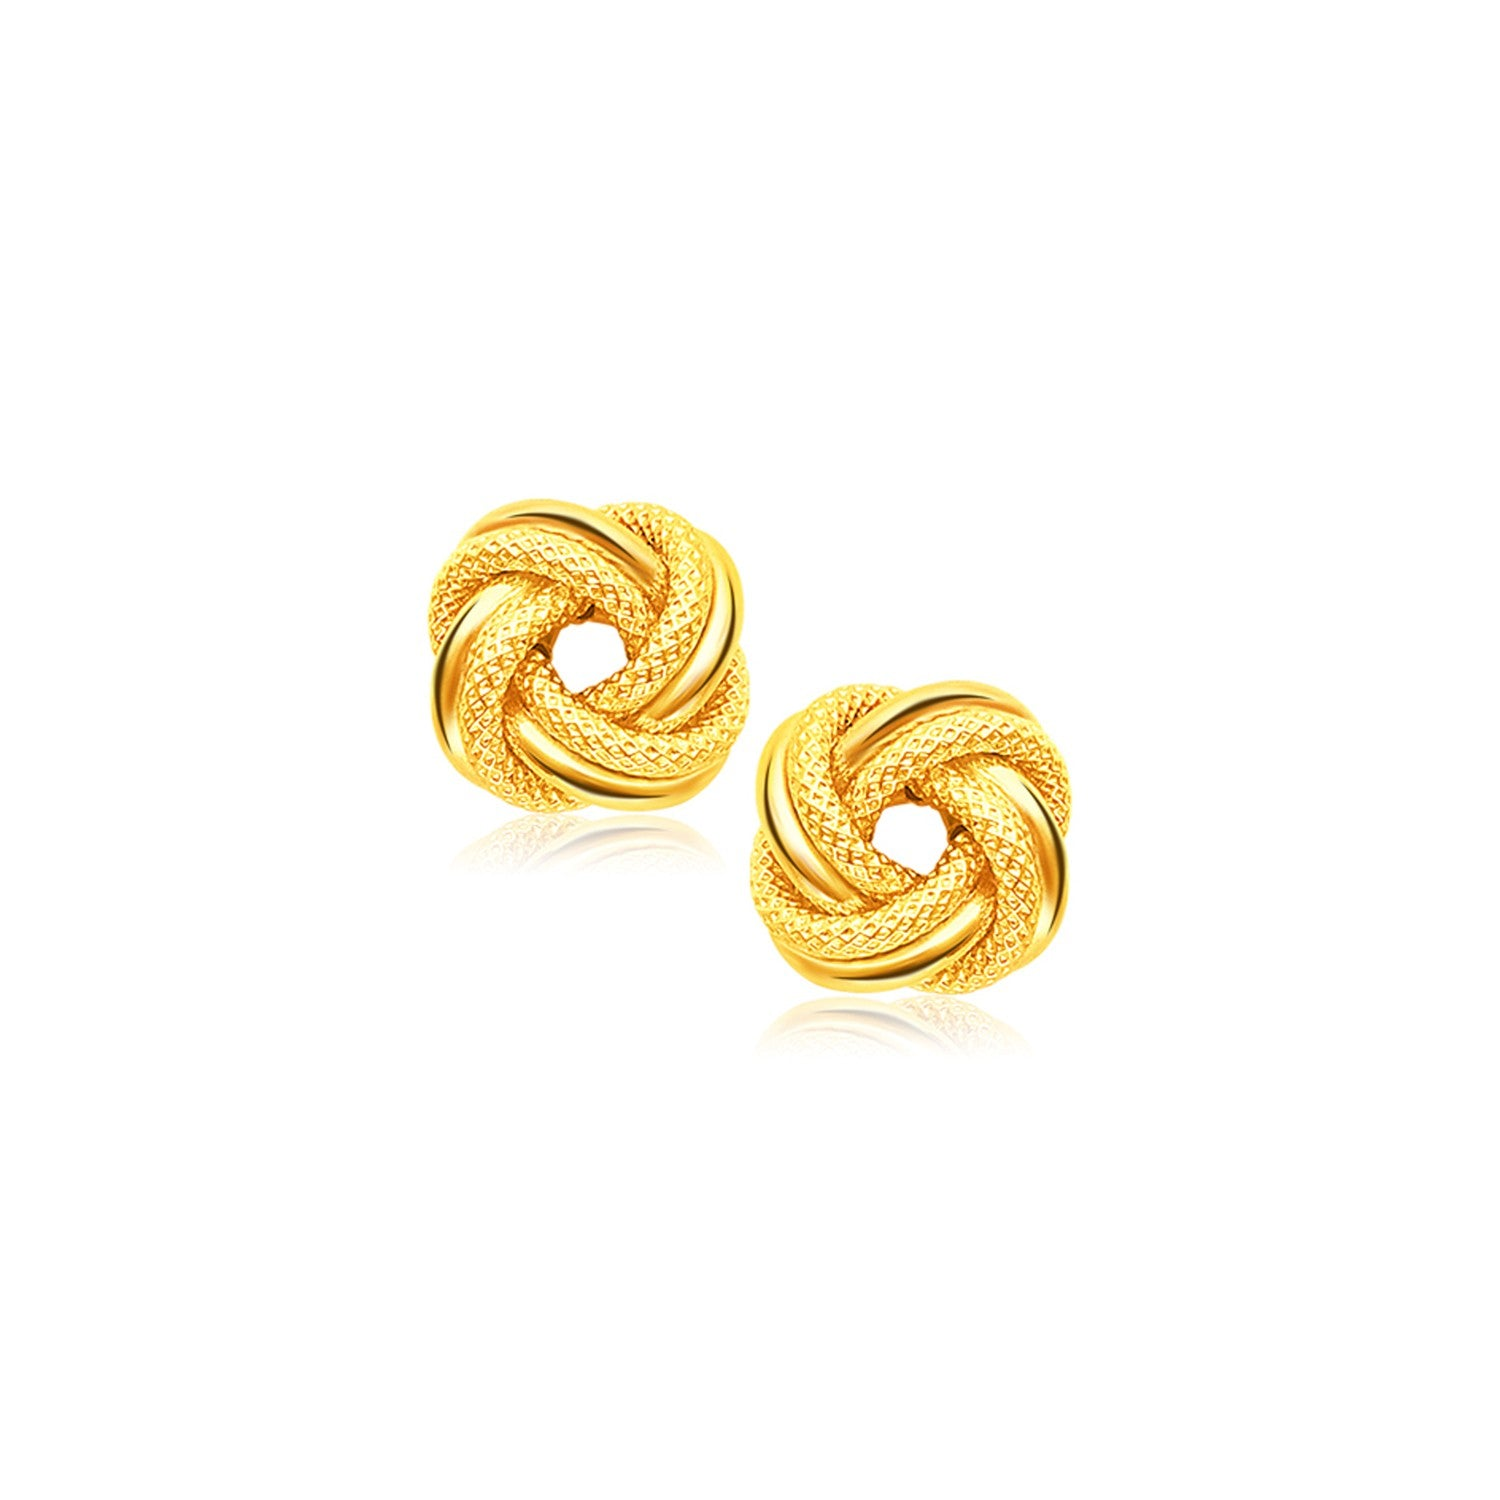 931bd43bb 14k Yellow Gold Intertwined Love Knot Stud Earrings - Unity BAMN